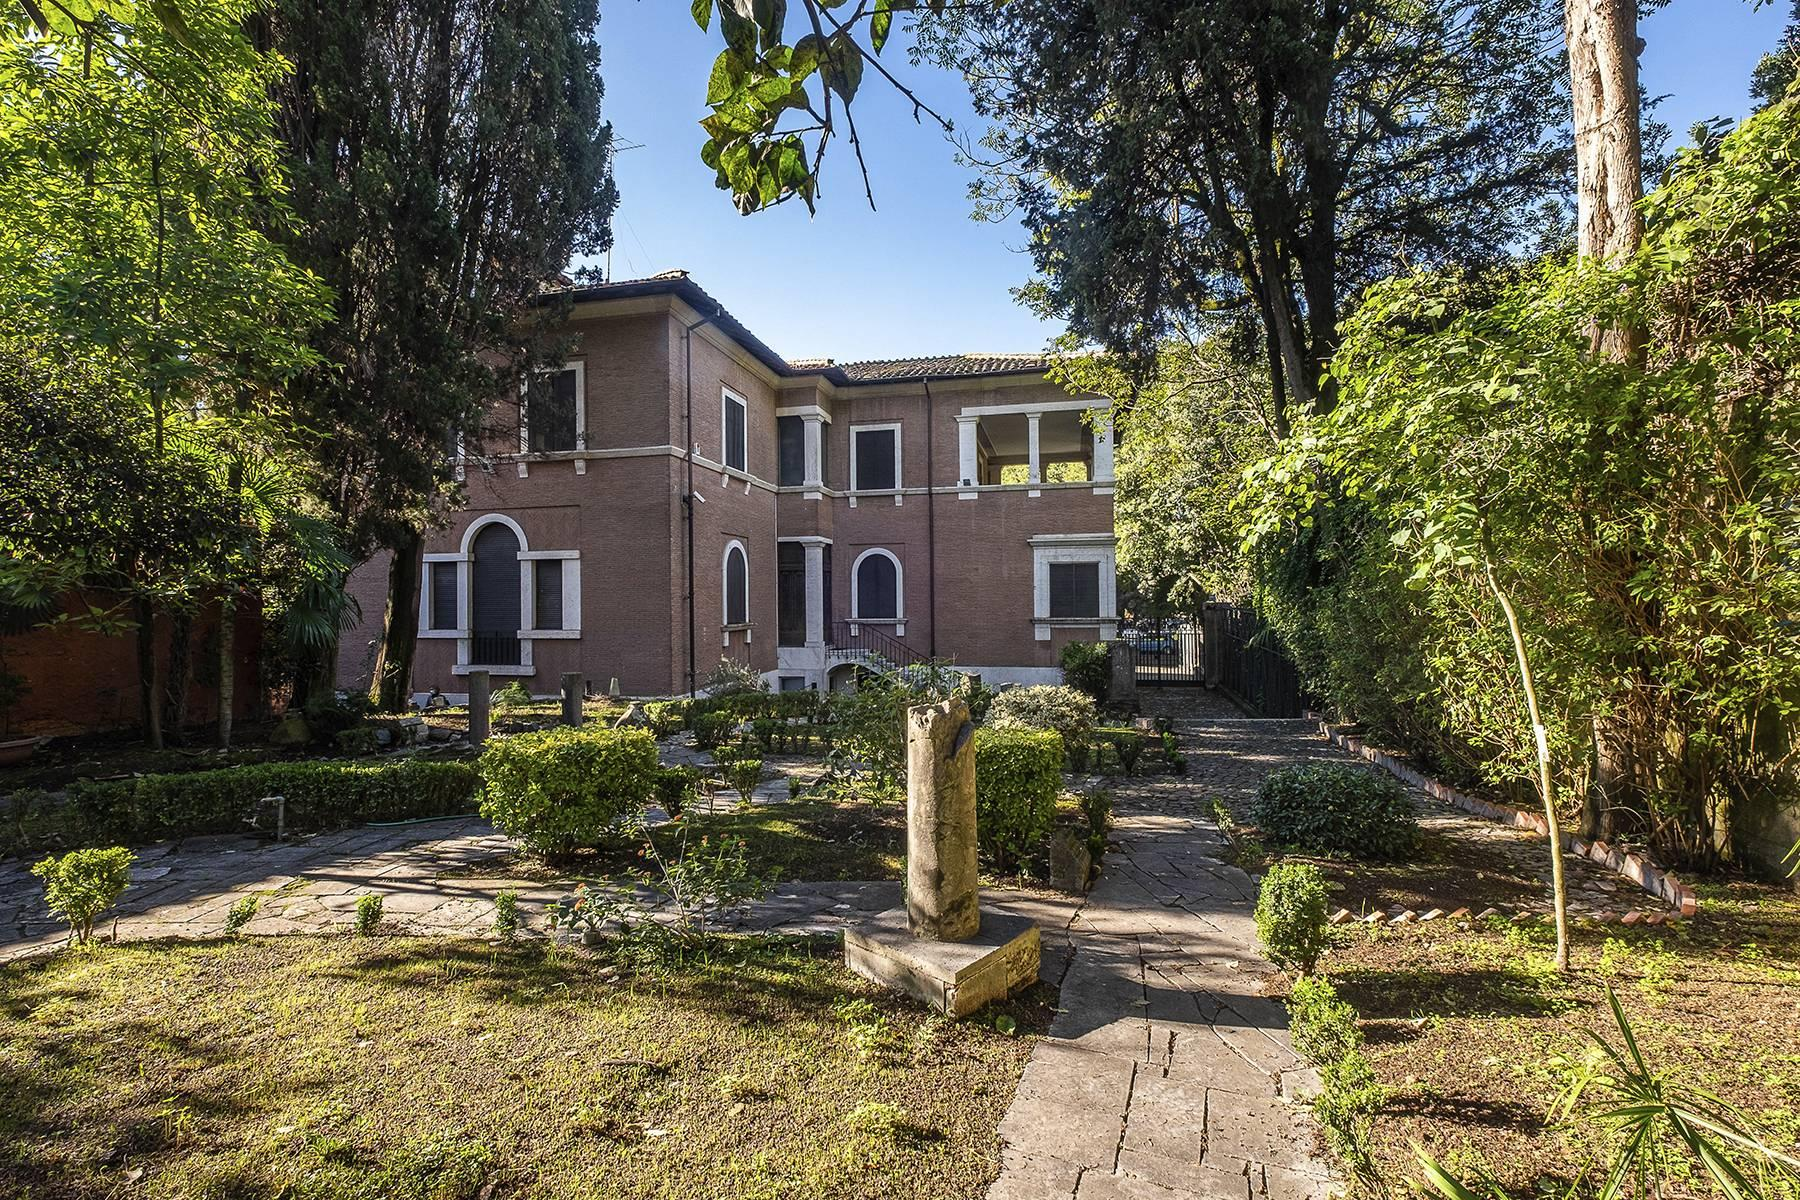 Elegant classical  Villa in the heart of Rome's archaeological ruins - 2